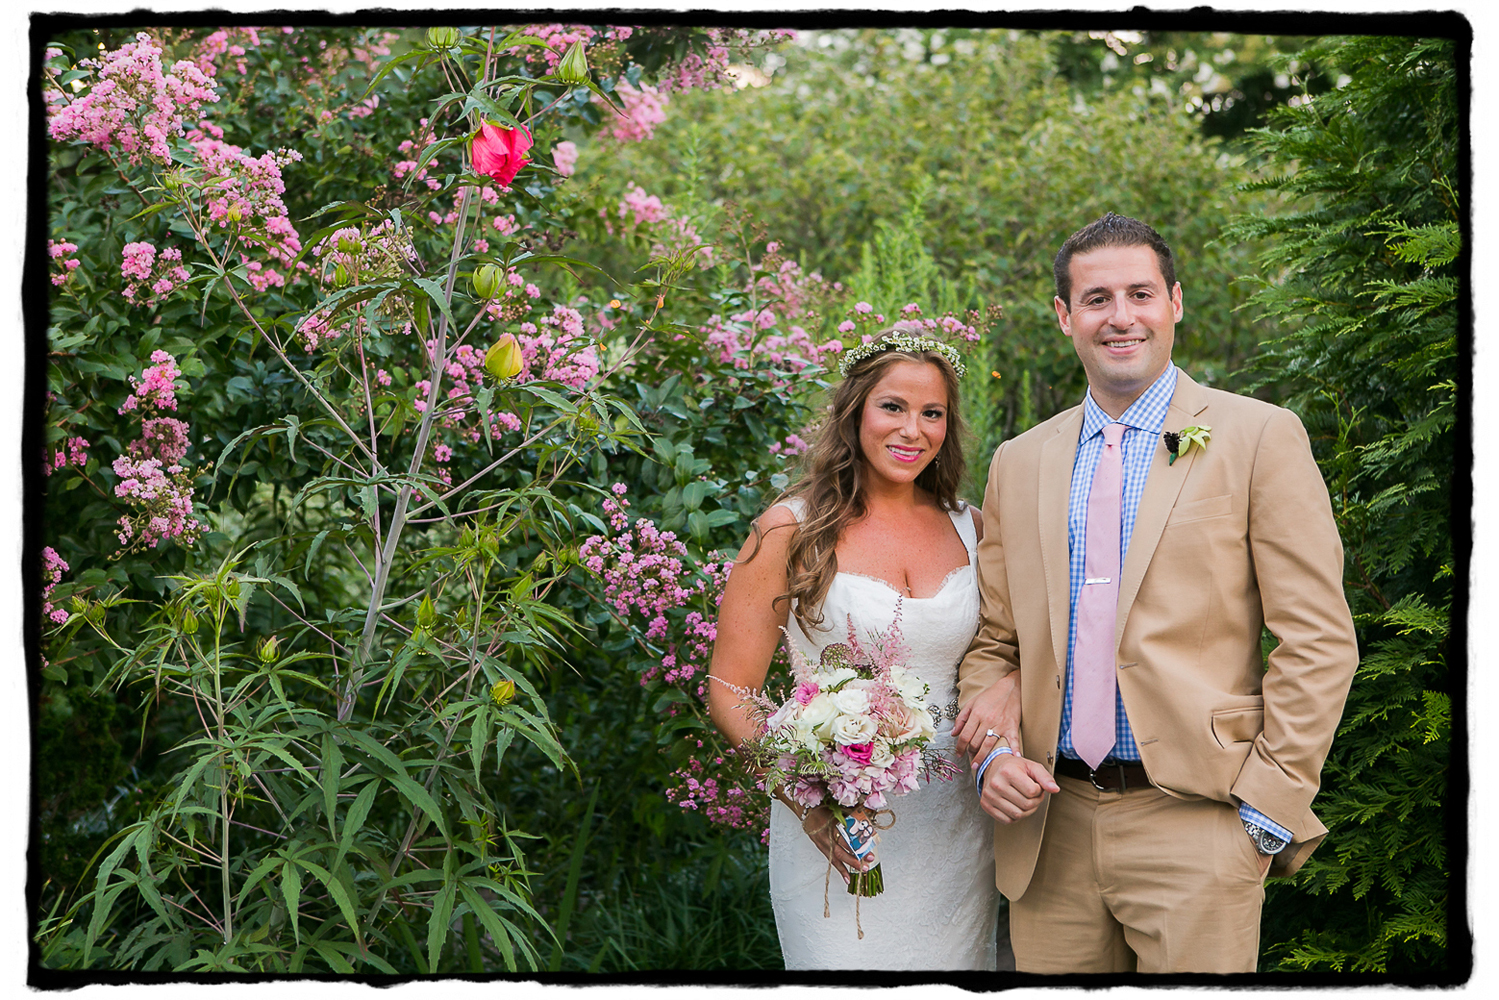 Rorie & Adam's beautiful summer wedding at The Palm House featured shades of pink and a huge wedding party and had a garden party style.  The groom and his groomsmen wore these charming tan suits with a blue checked shirt and pink ties!